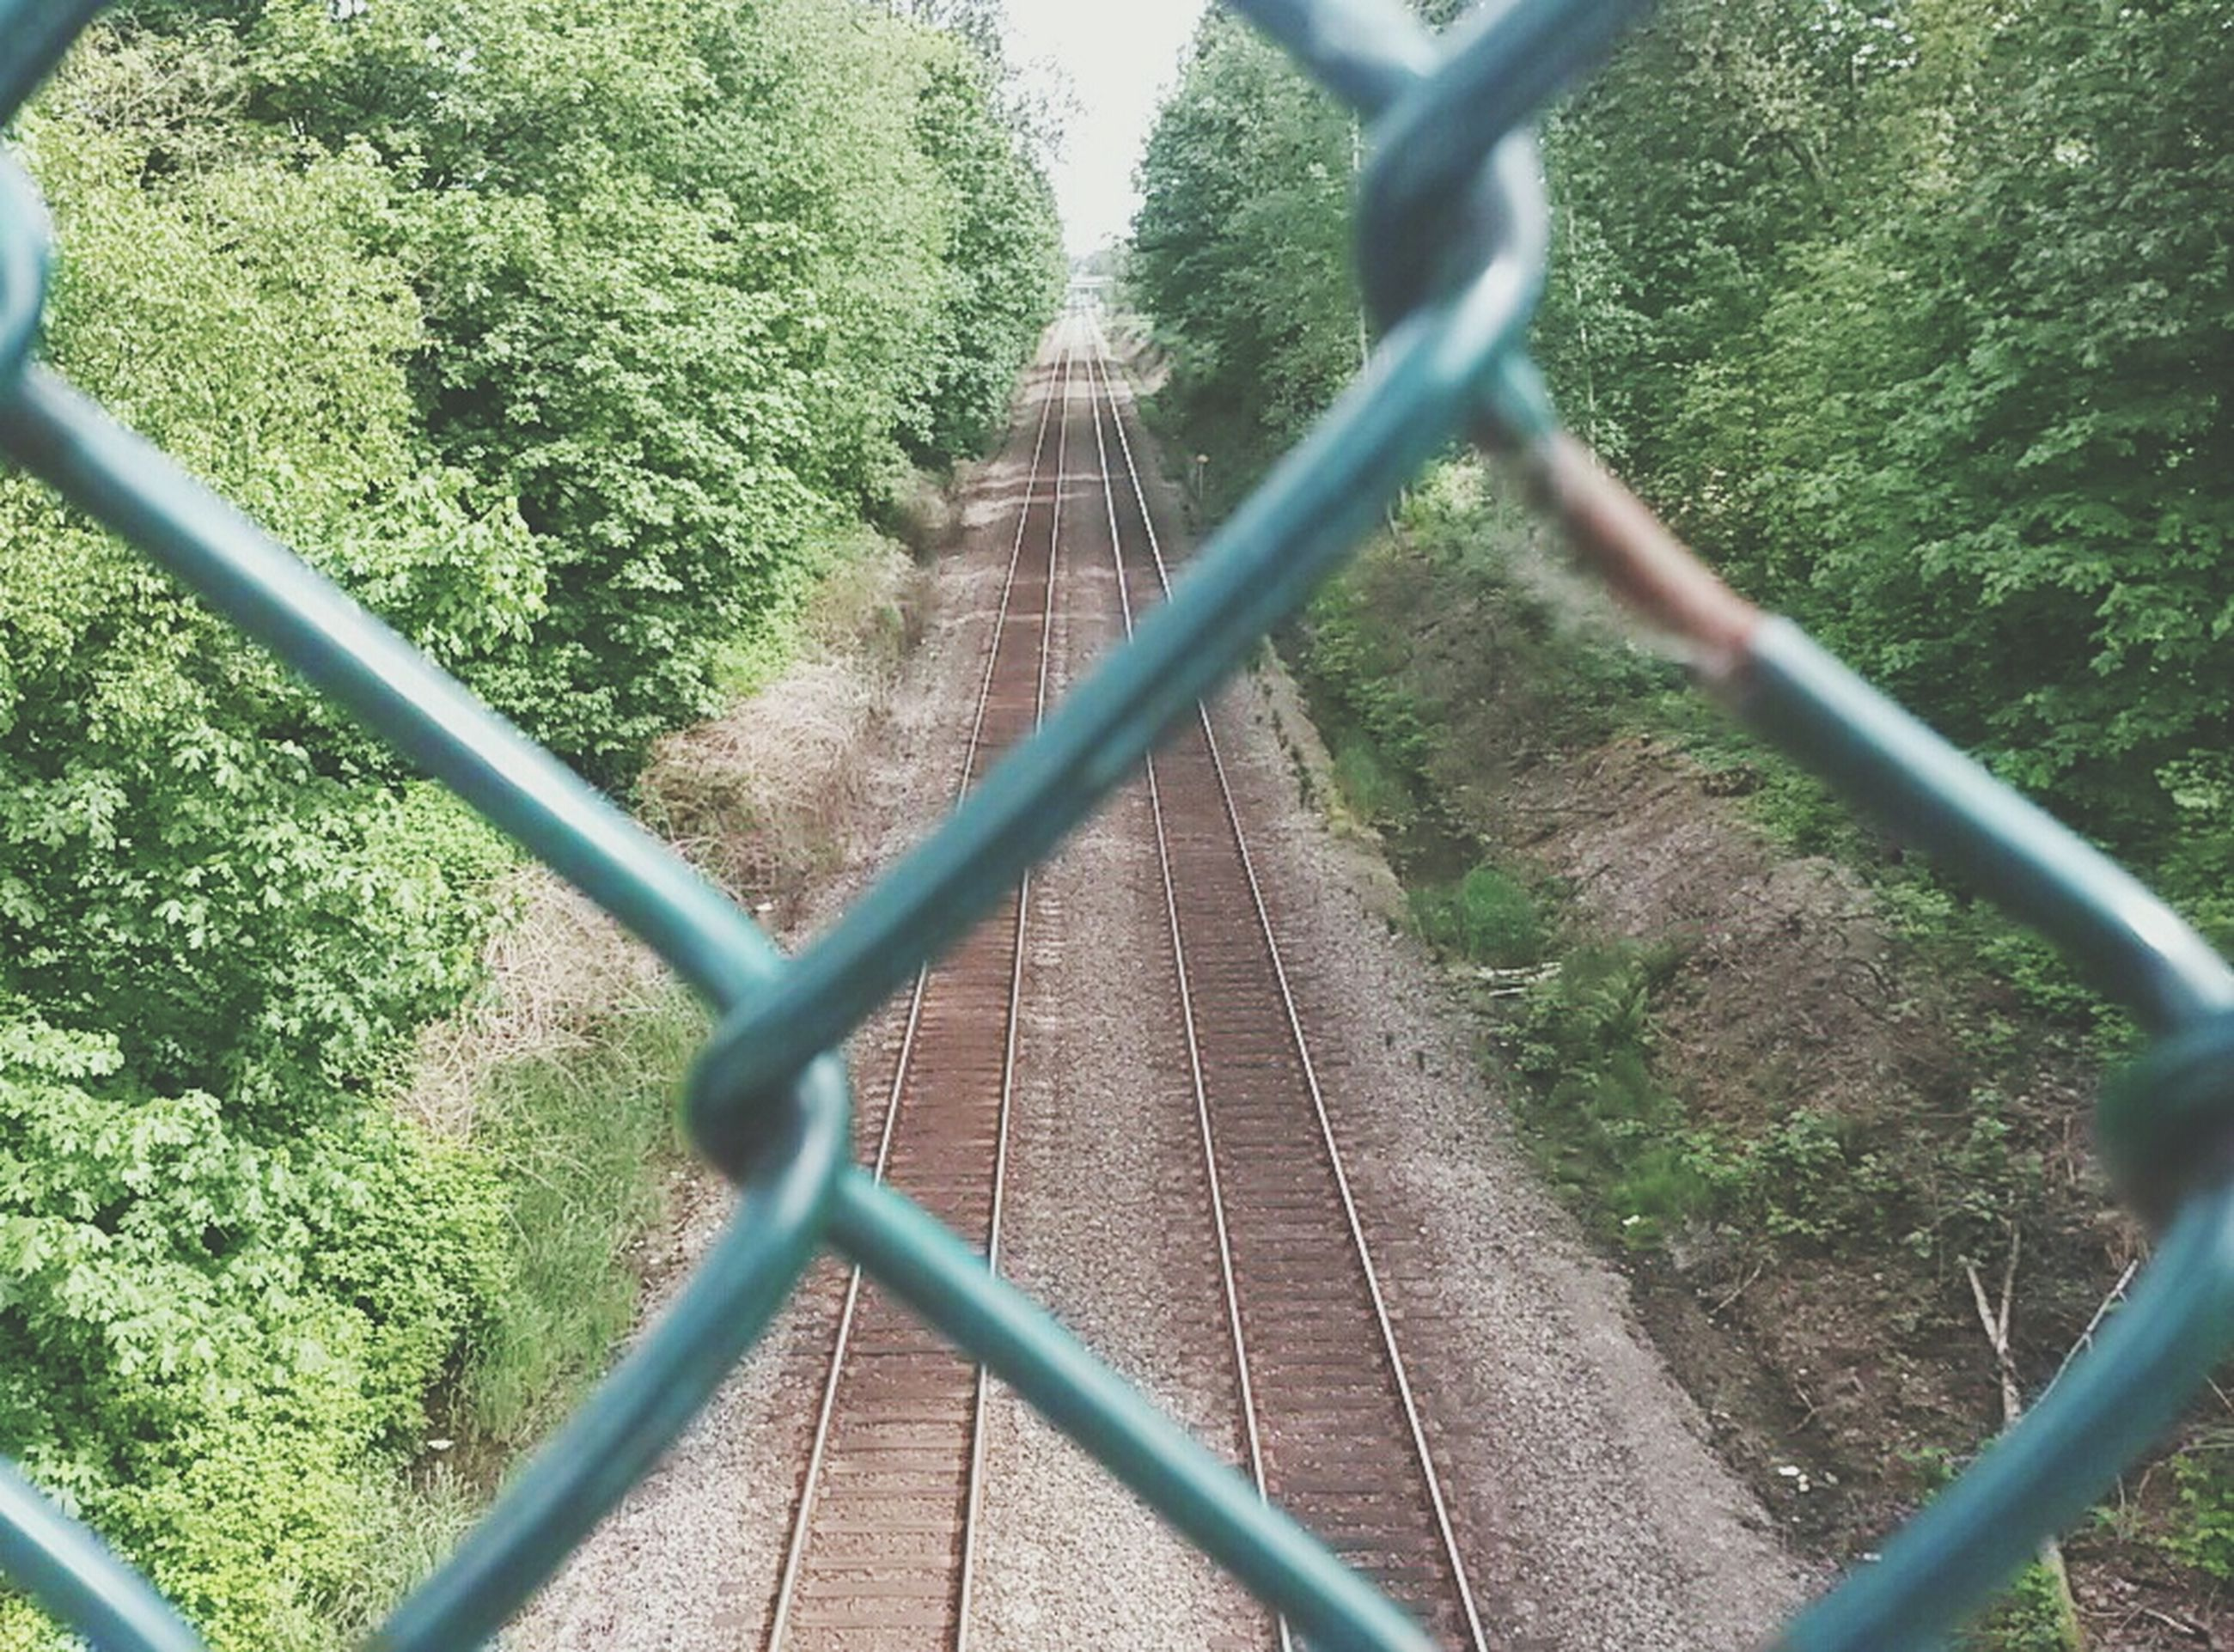 tree, railing, railroad track, metal, transportation, fence, rail transportation, growth, green color, high angle view, plant, the way forward, chainlink fence, day, nature, protection, metallic, diminishing perspective, no people, connection